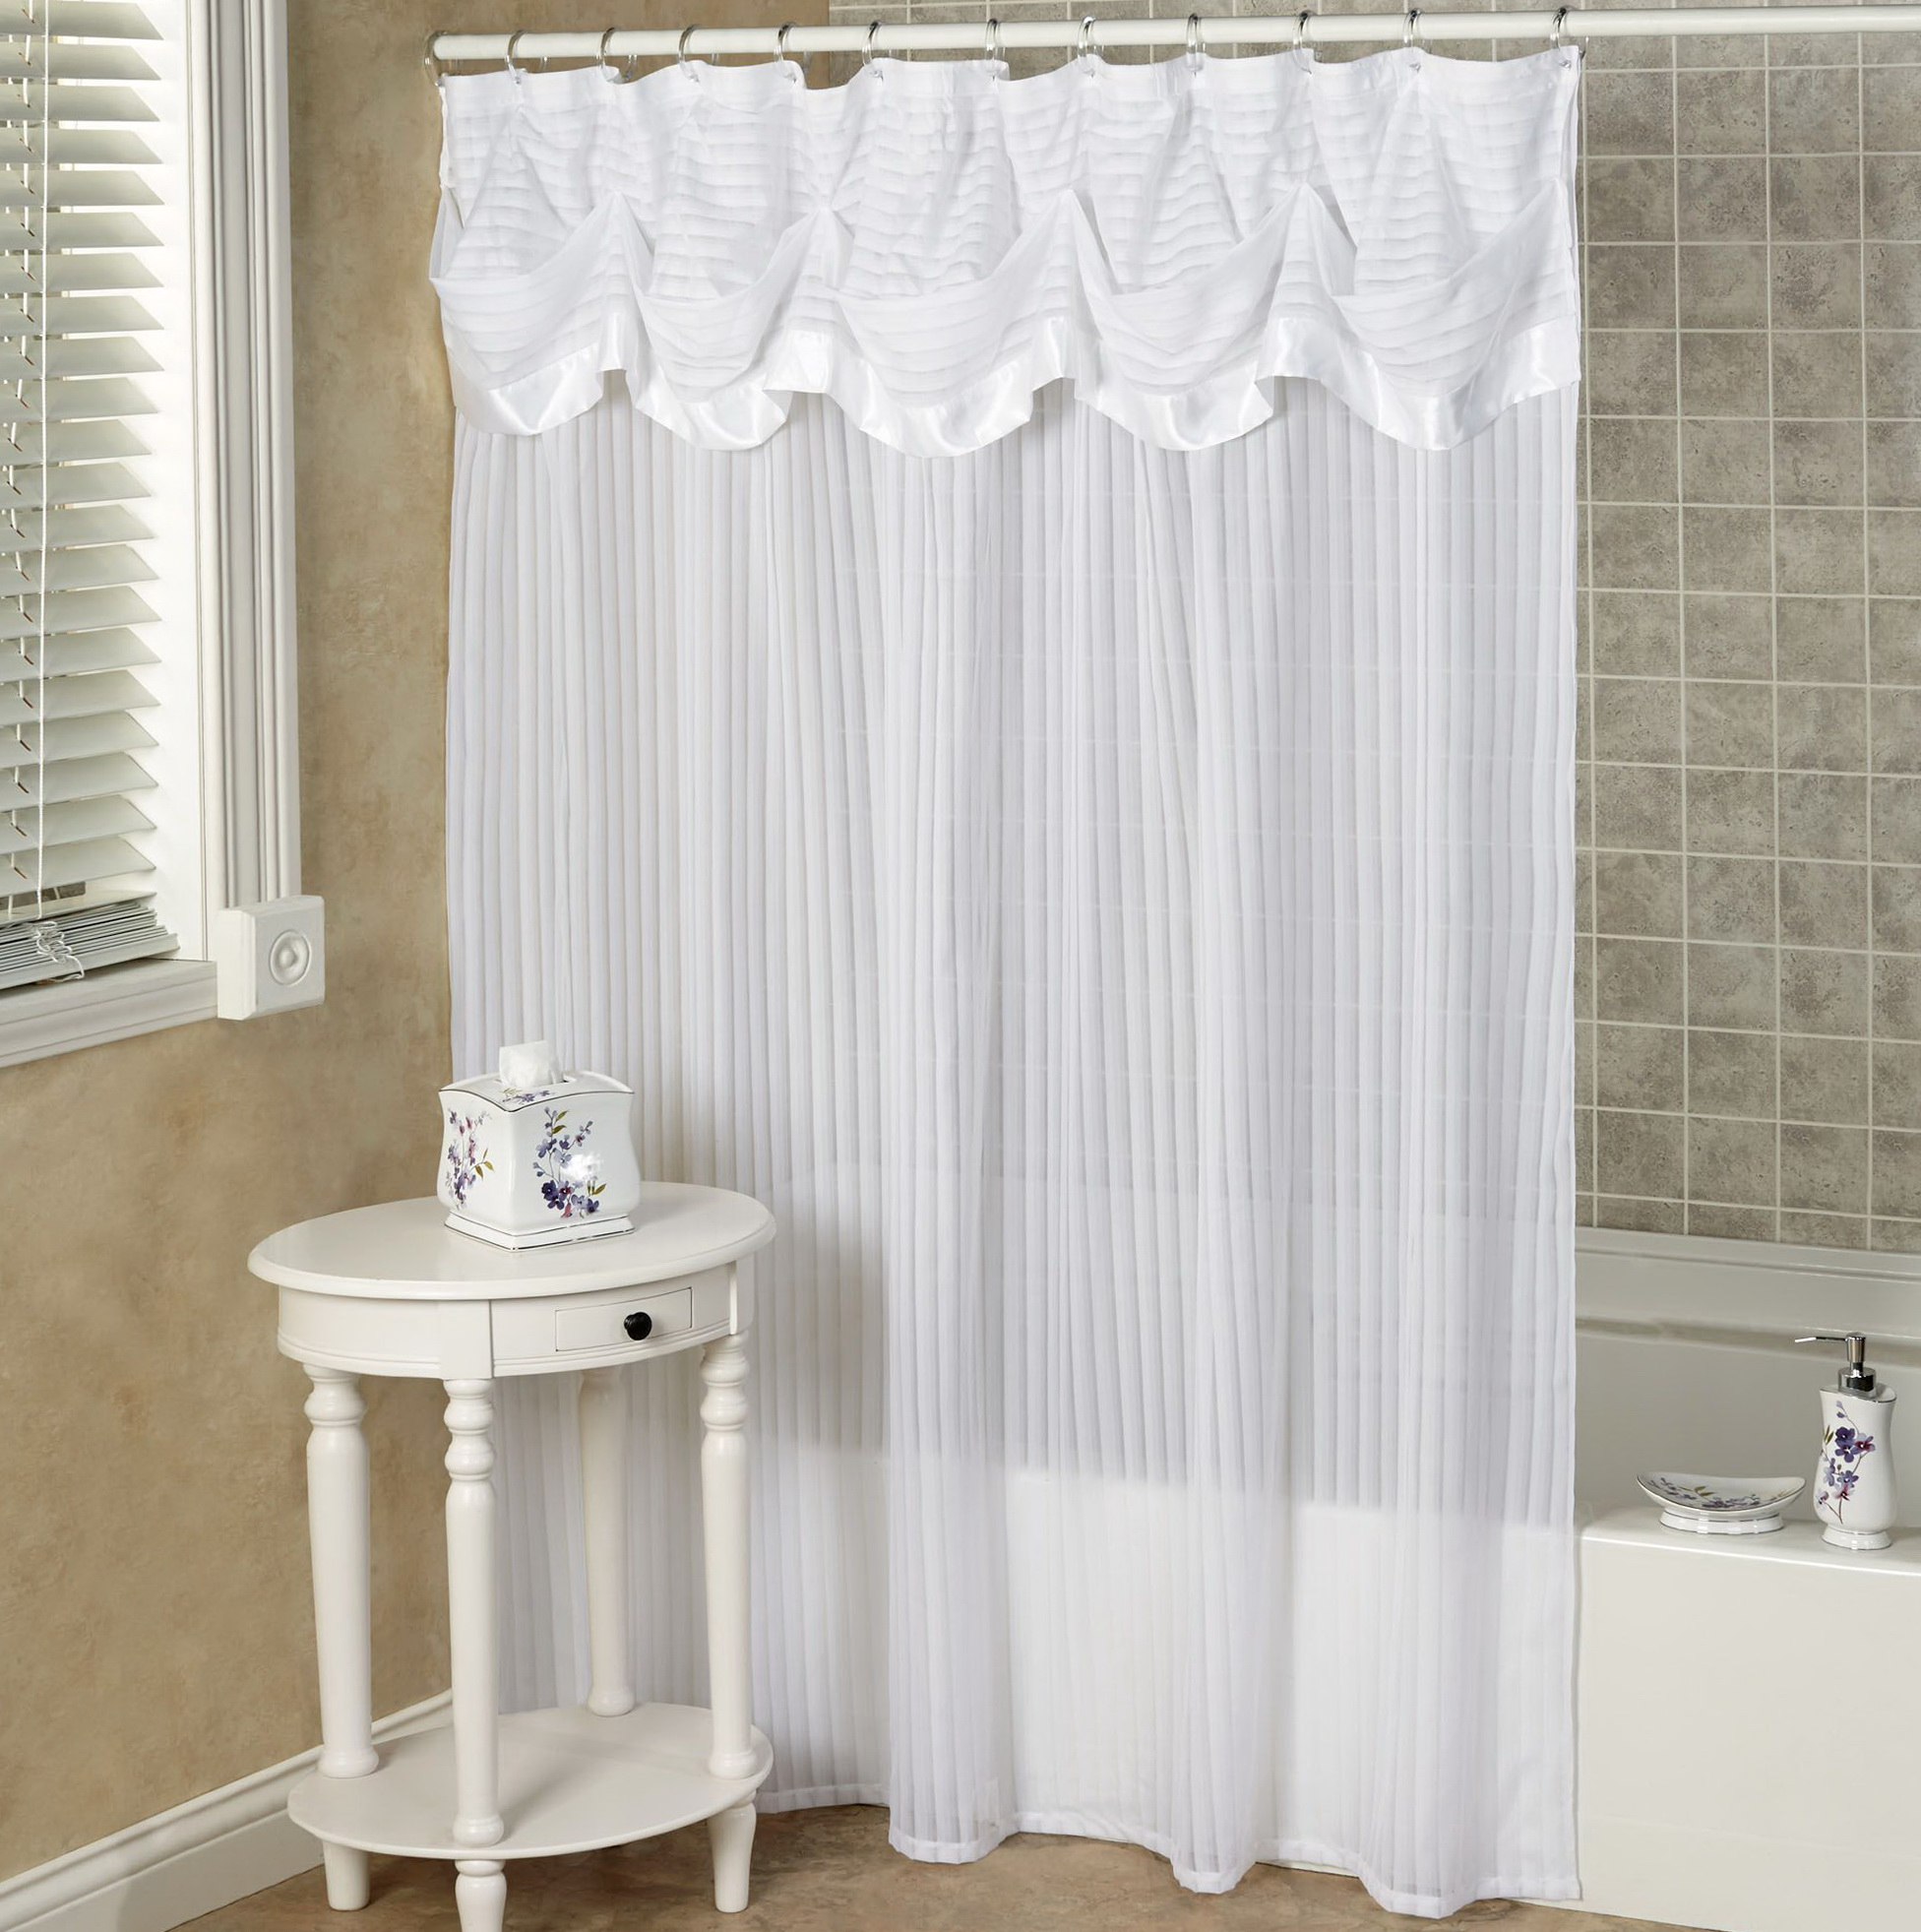 Shower Curtain With Valance Attached Home Design Ideas